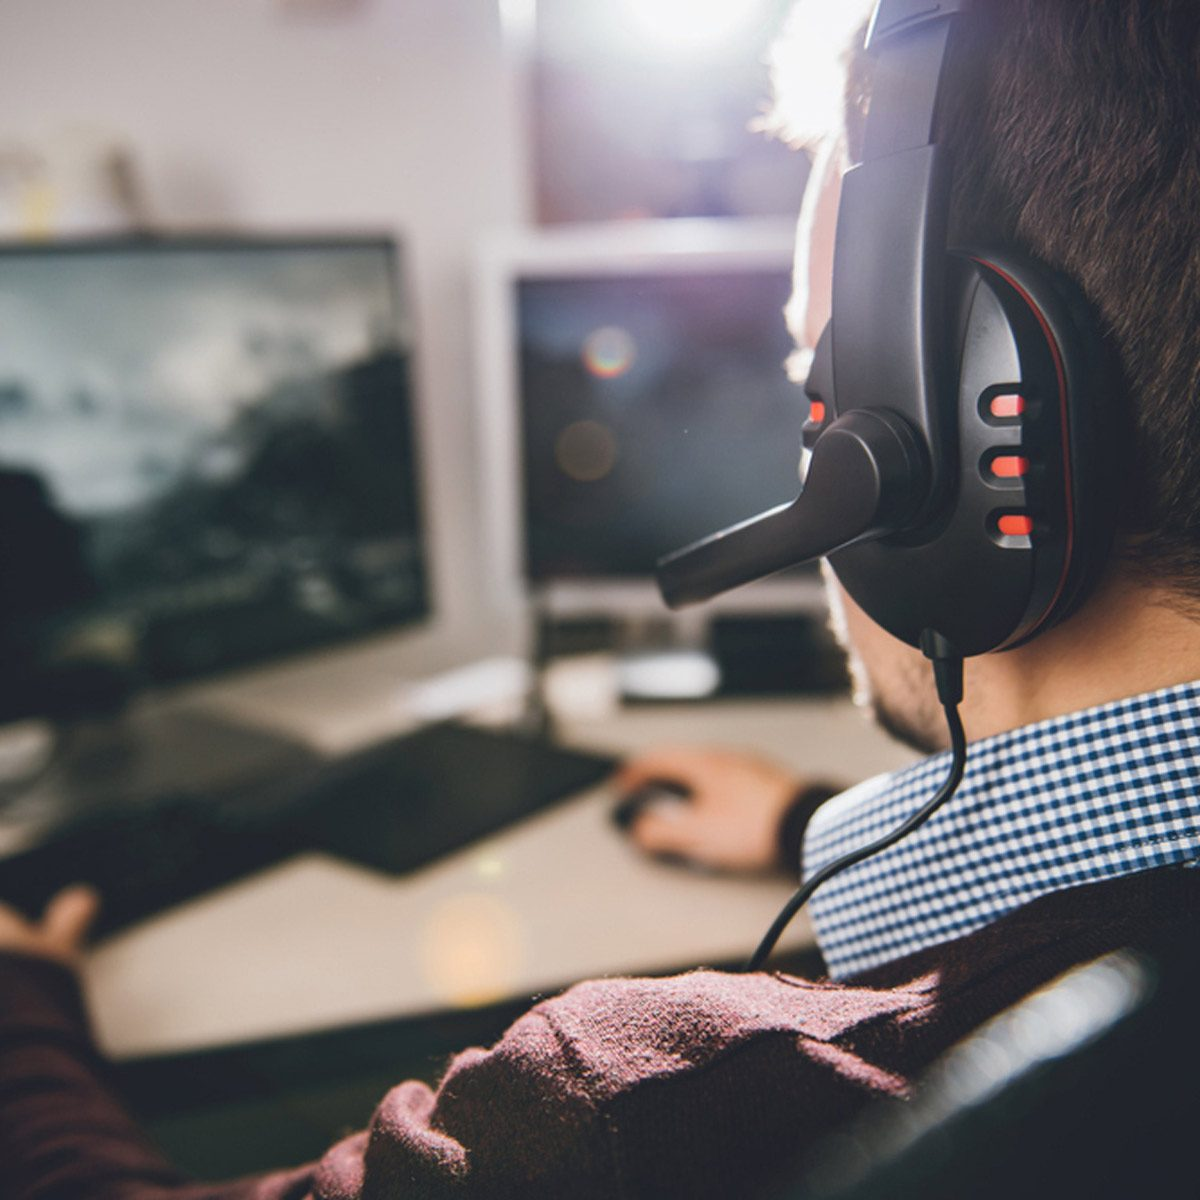 gamer gaming headphones computer video games